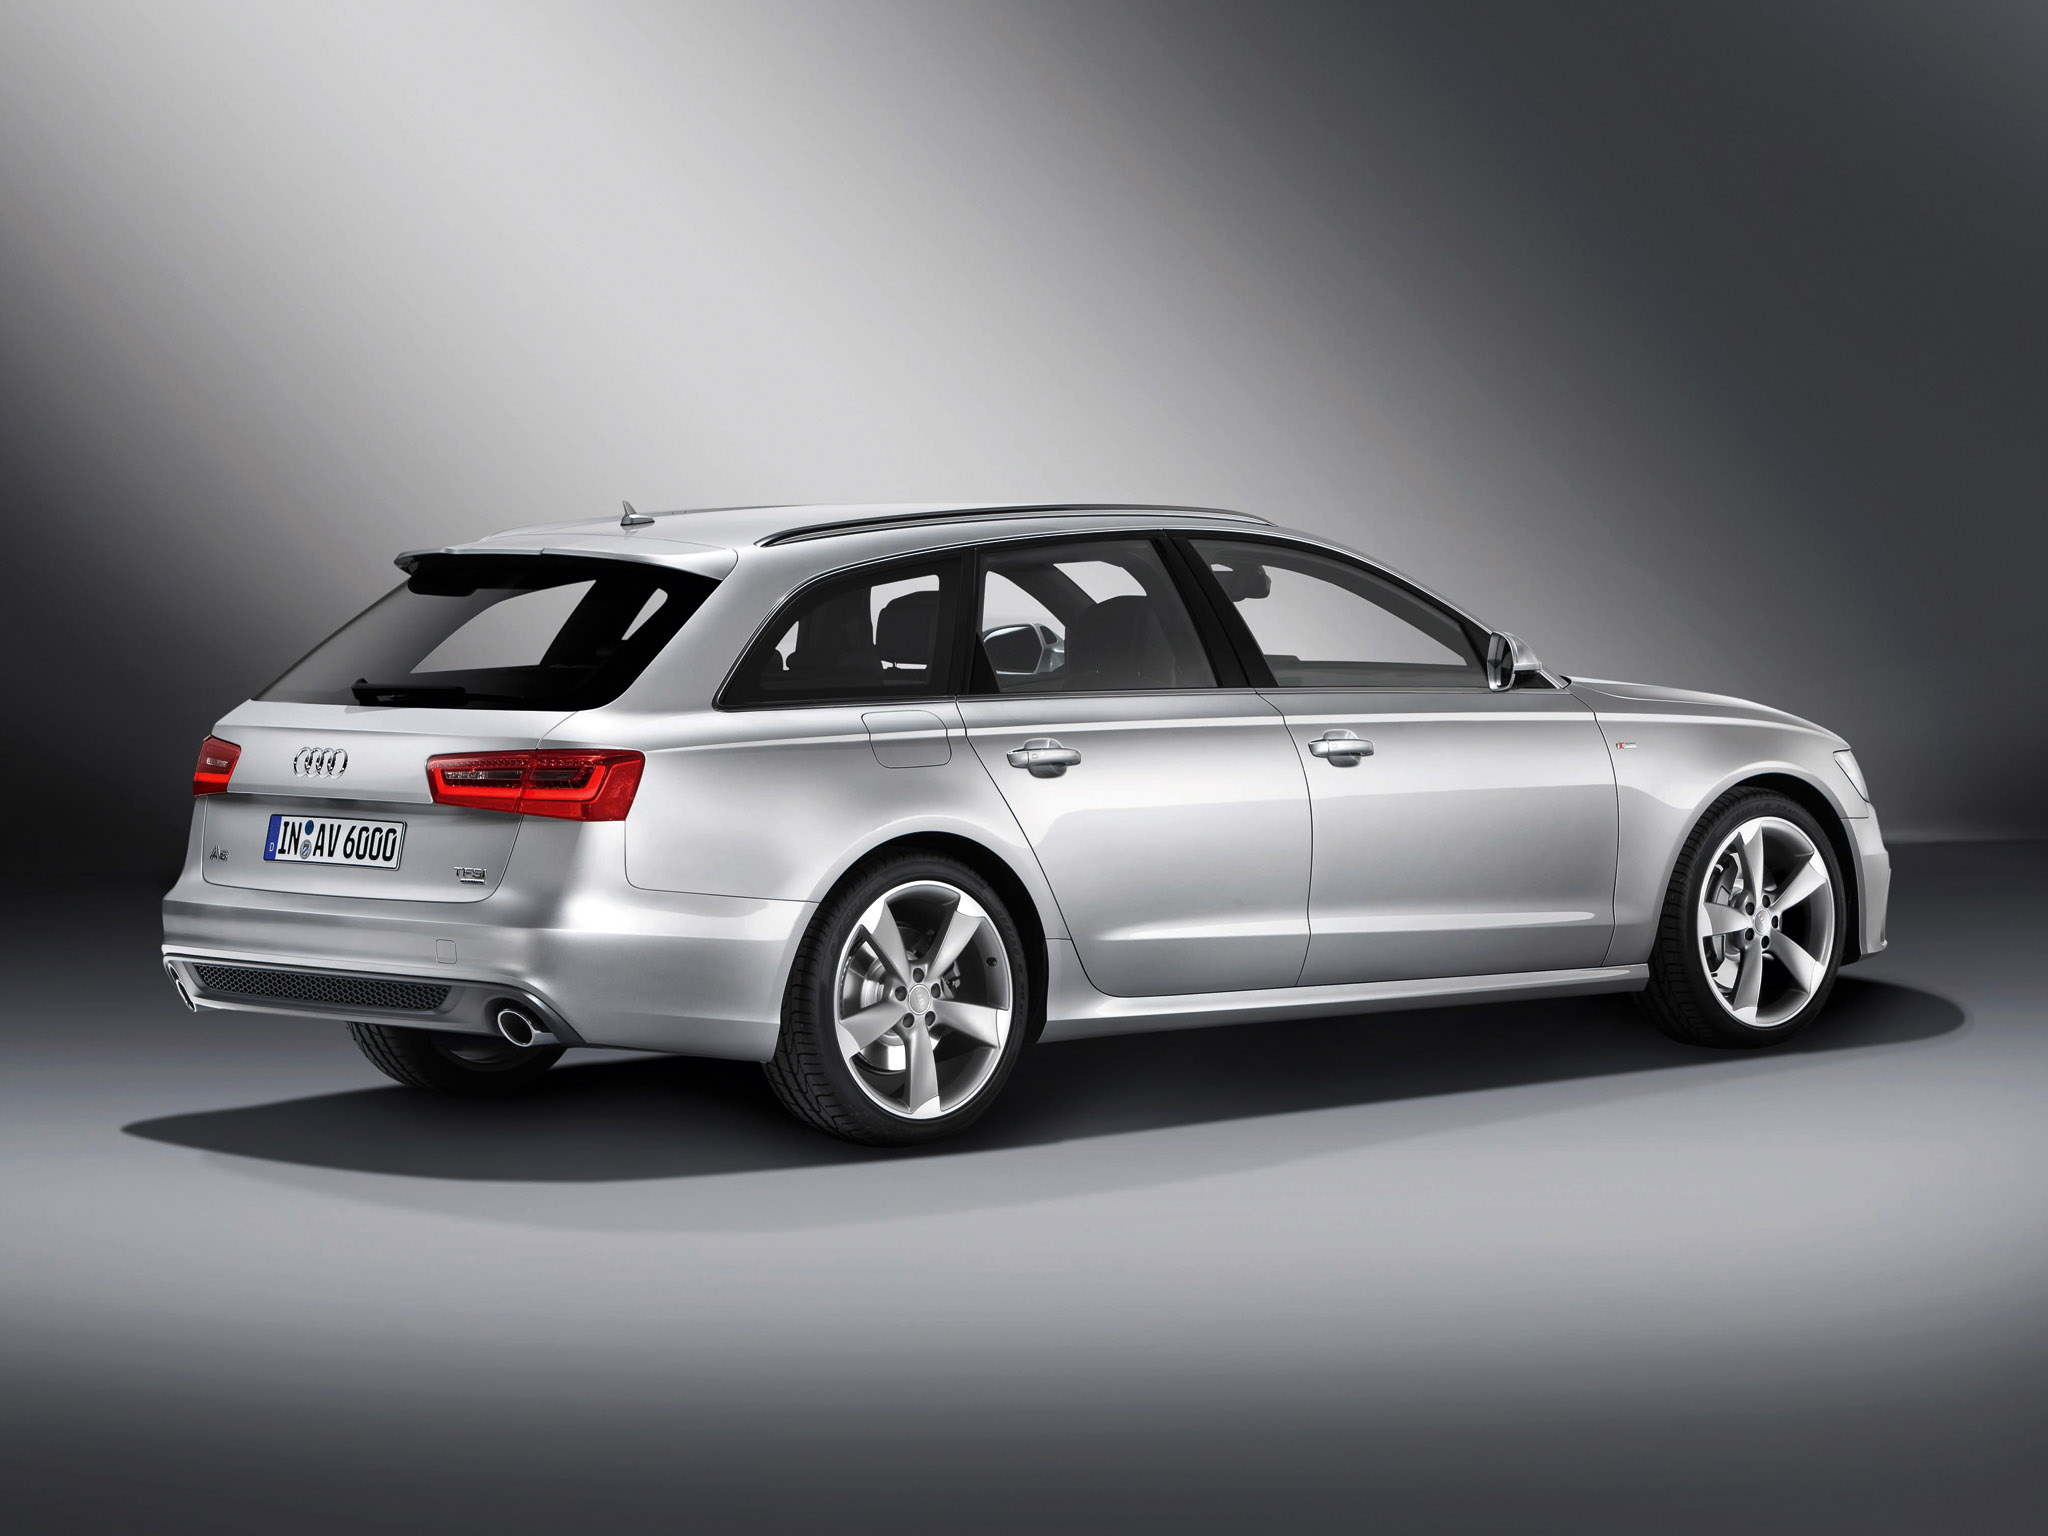 audi a6 avant 3 0 tfsi s line 2011 audi a6 avant 3 0 tfsi s line 2011 photo 06 car in pictures. Black Bedroom Furniture Sets. Home Design Ideas